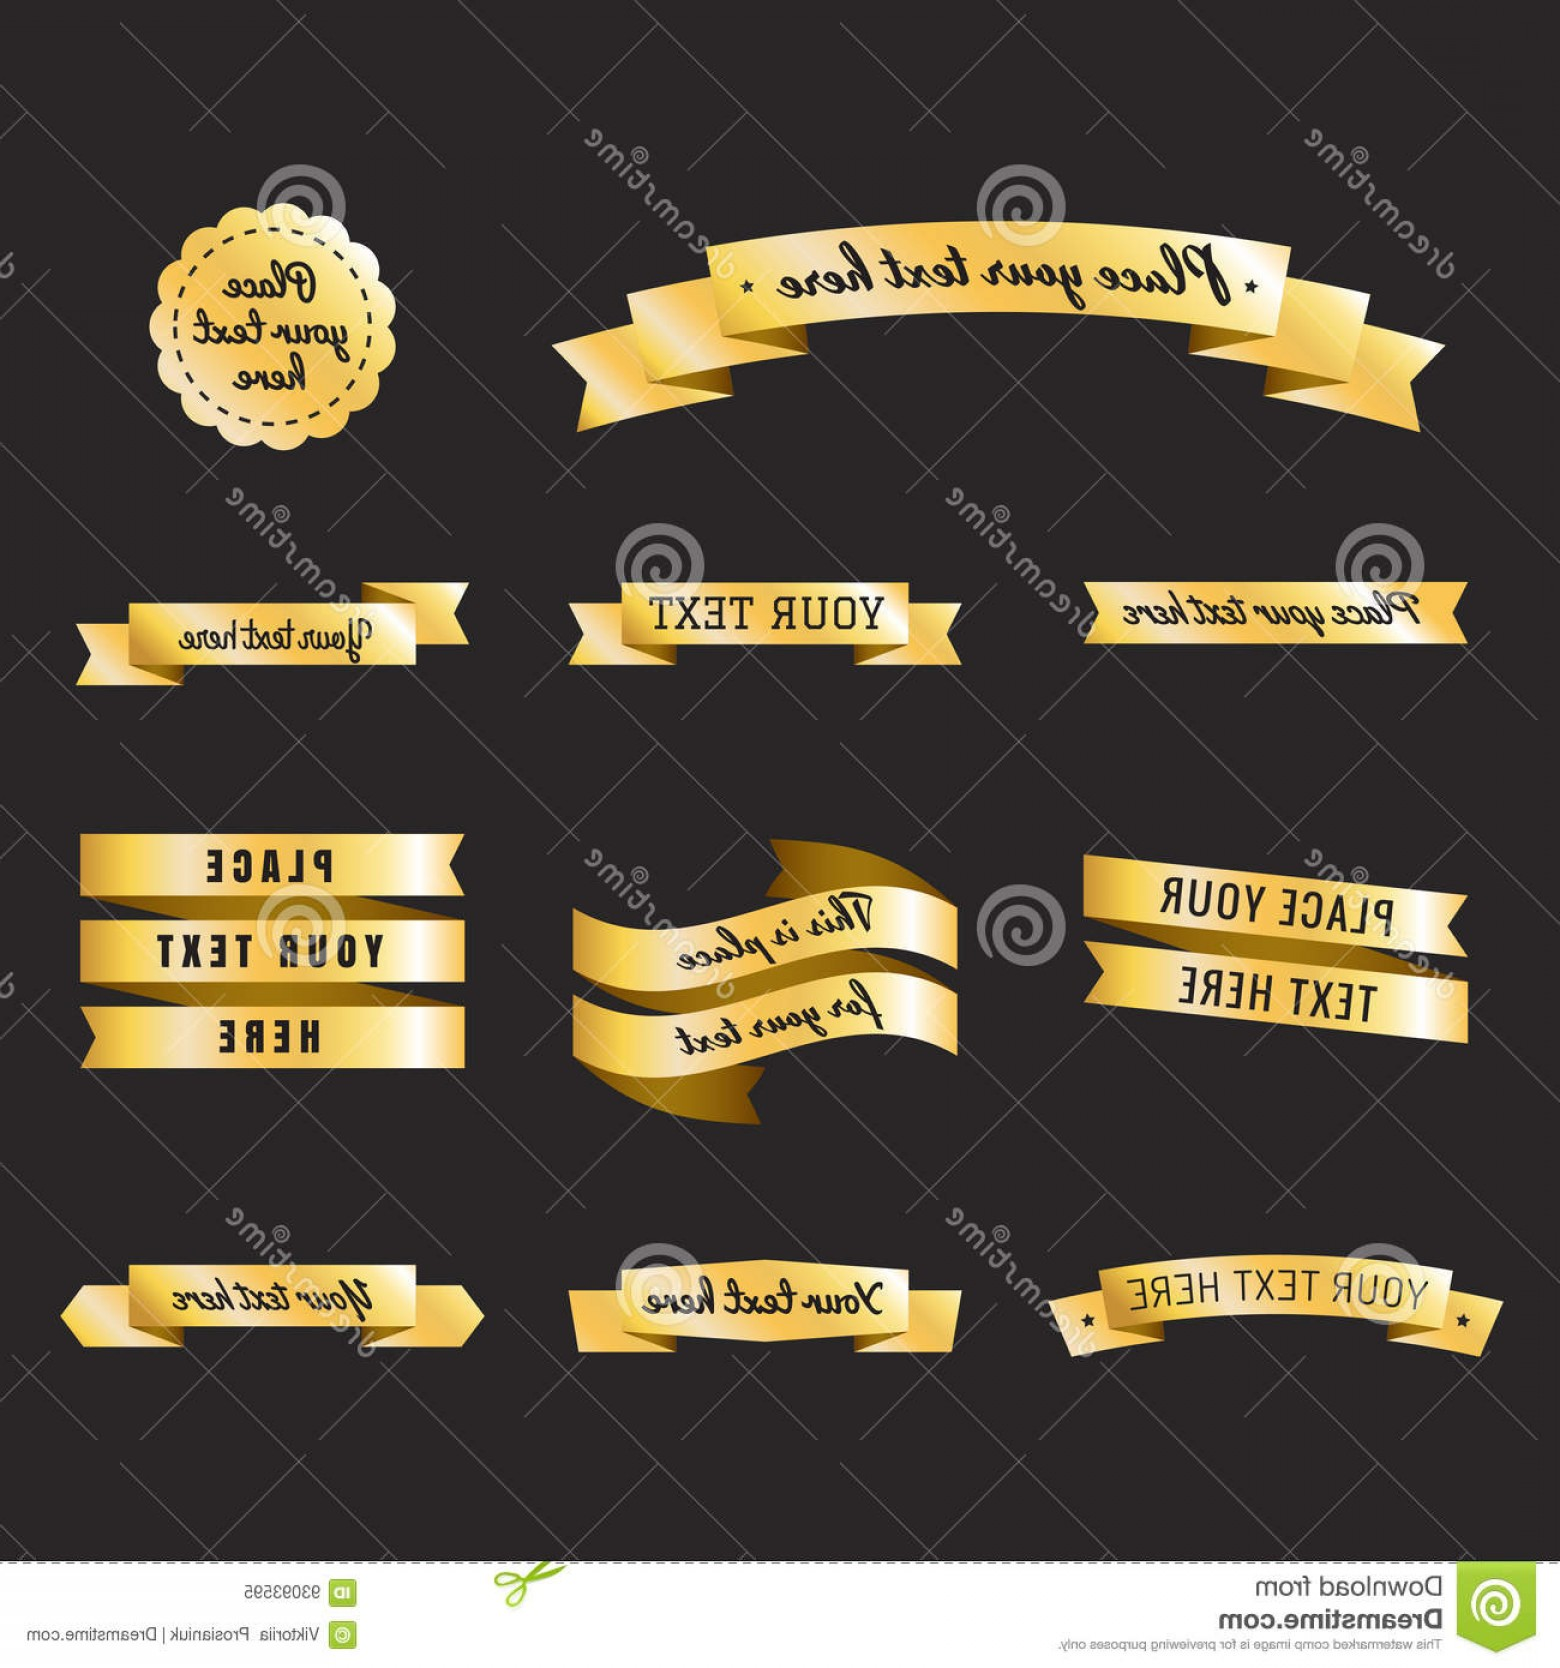 Badge Vector 1920'Sribbon: Stock Illustration Gold Vintage Ribbons Retro Style Vector Set Part Three Labels Badges Image